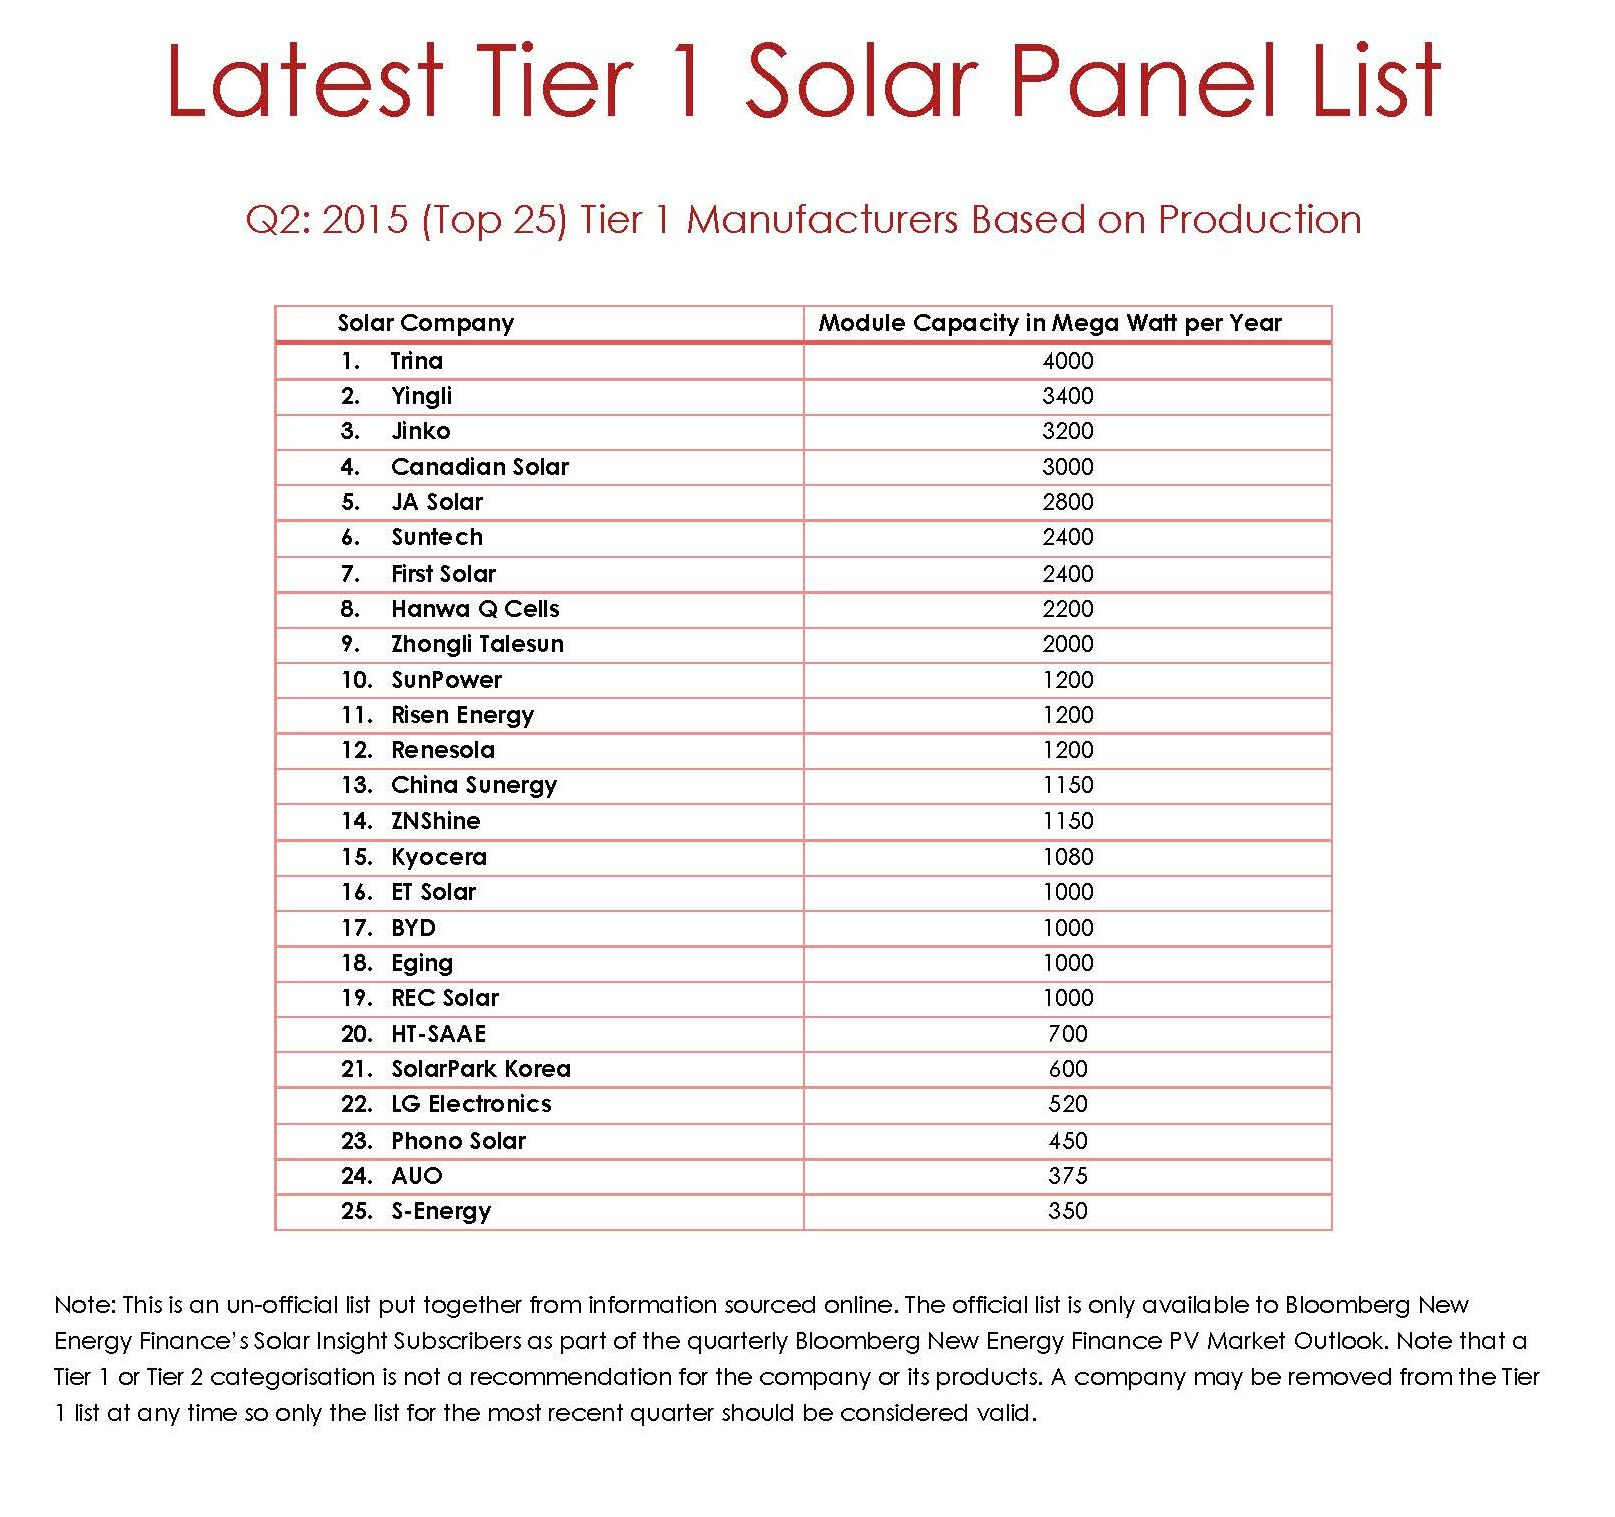 What is a tier 1 solar panel?